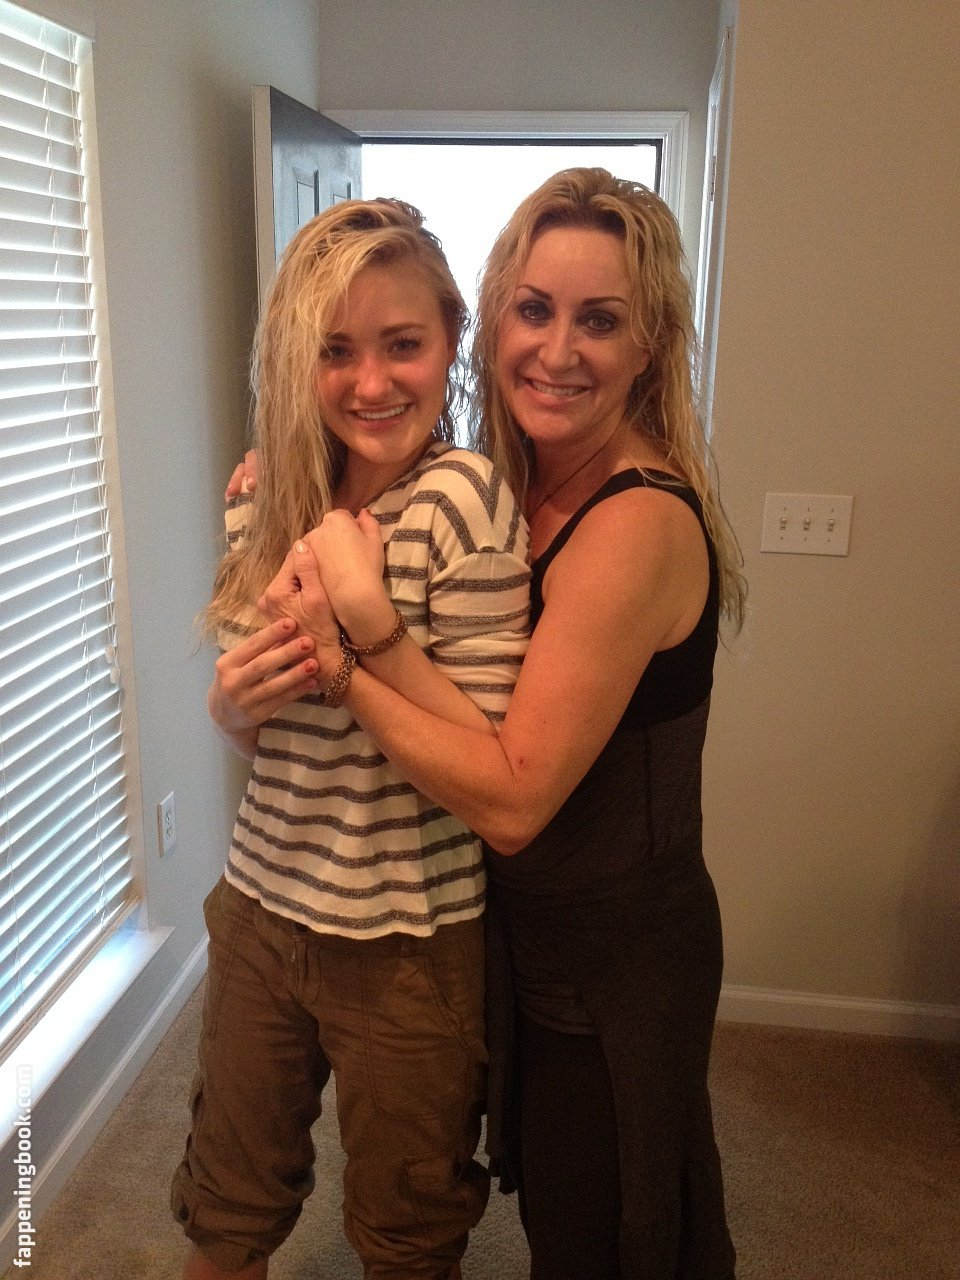 Michalka Sisters Nude Leaked Photos The Fappening 2019